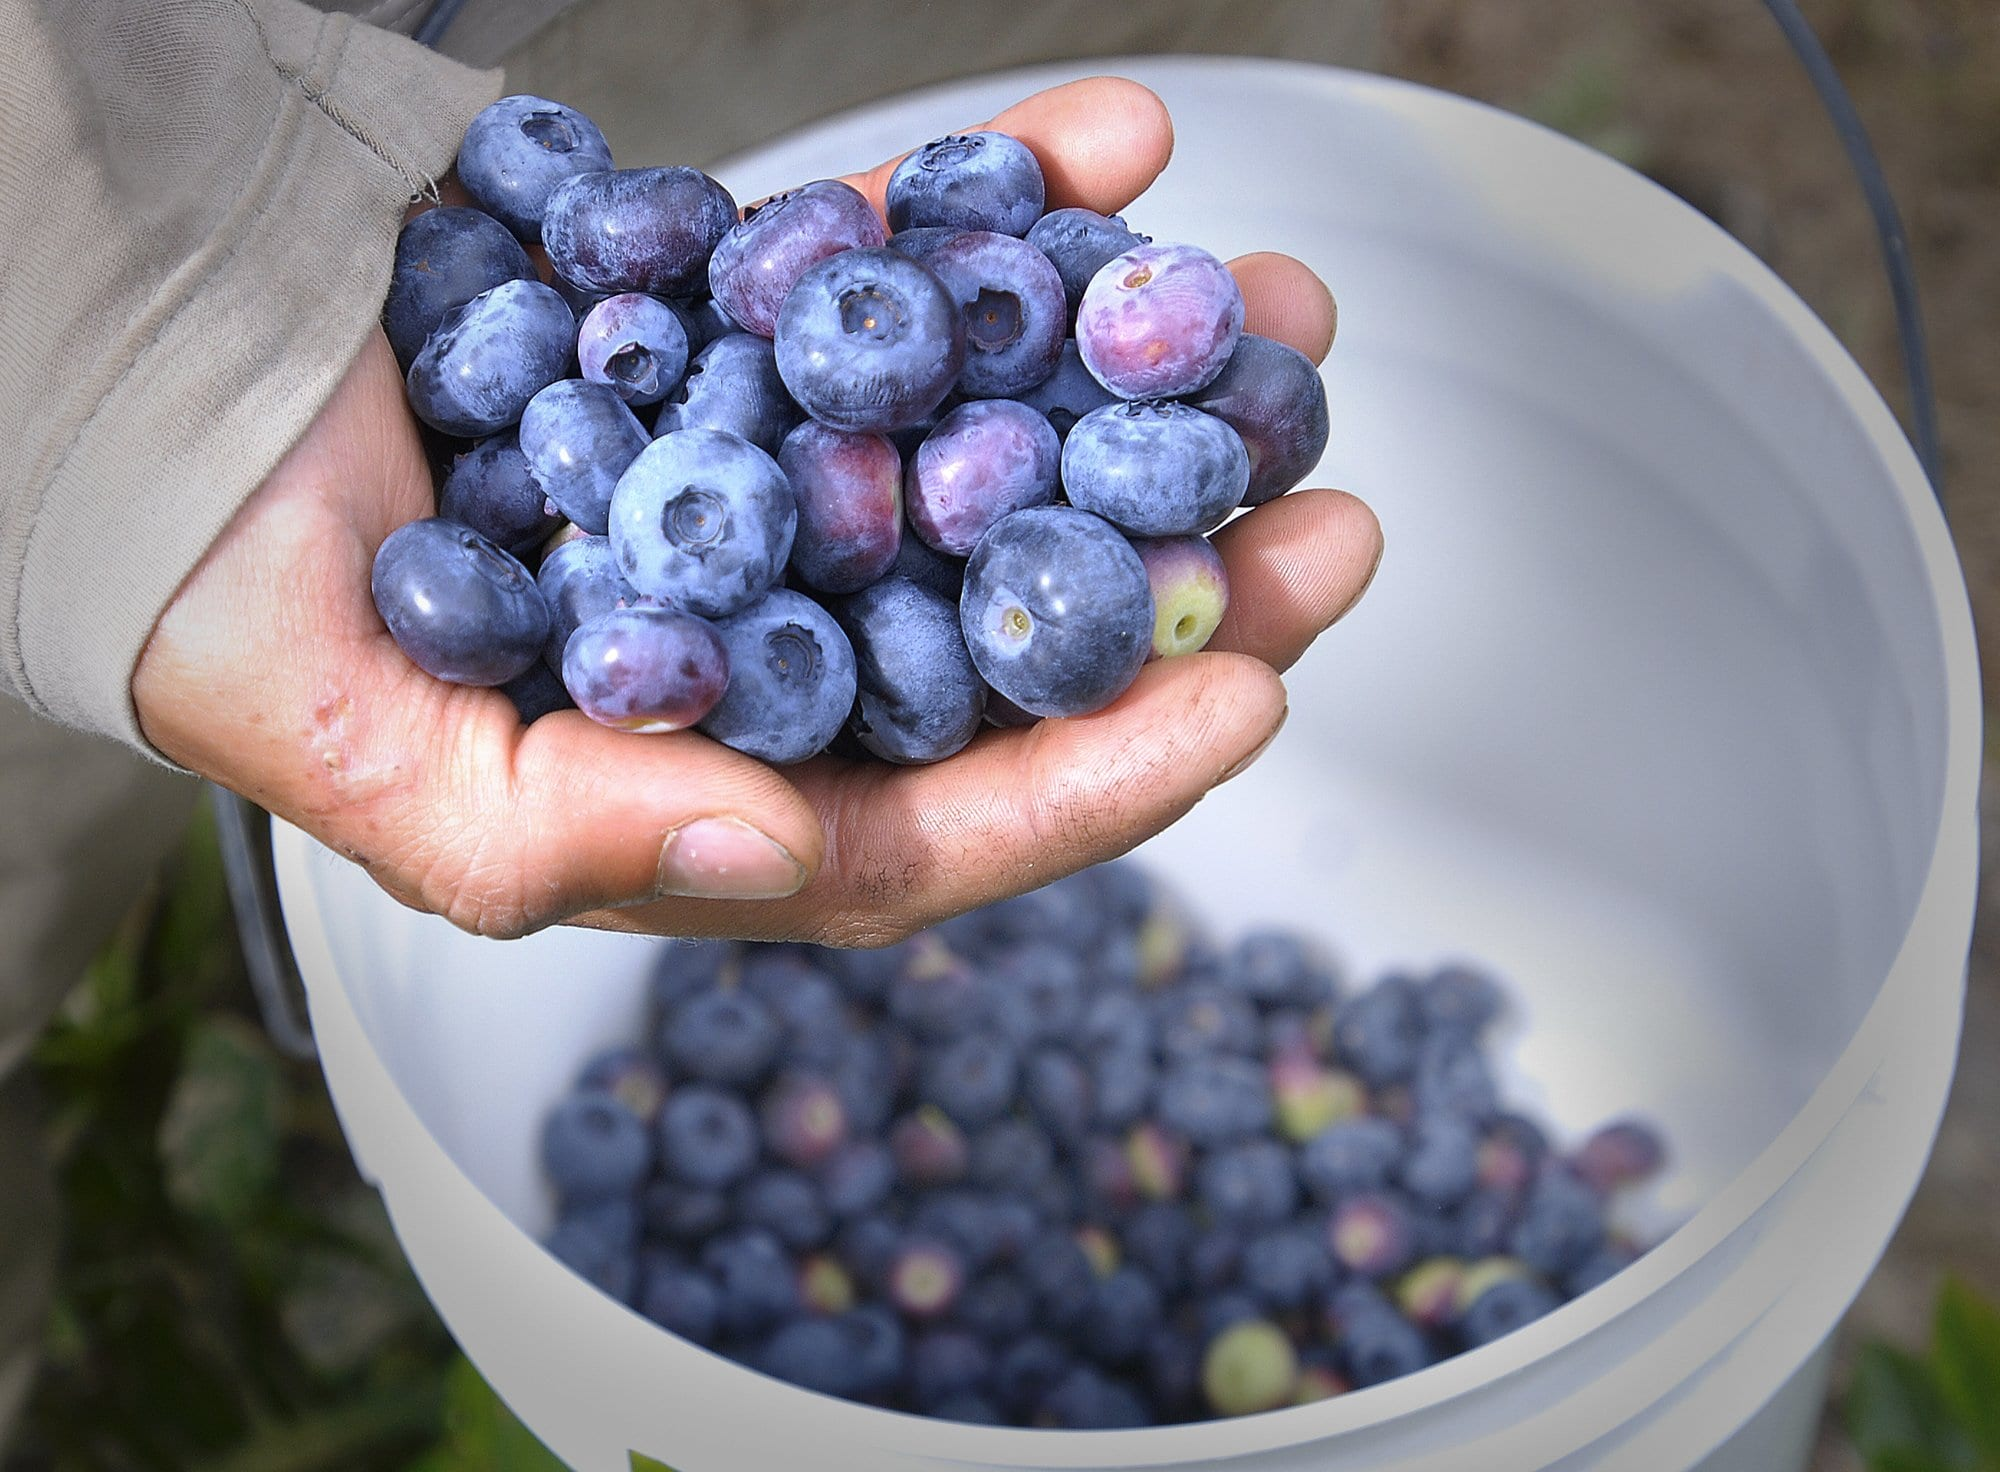 The Health Benefit of Blueberries